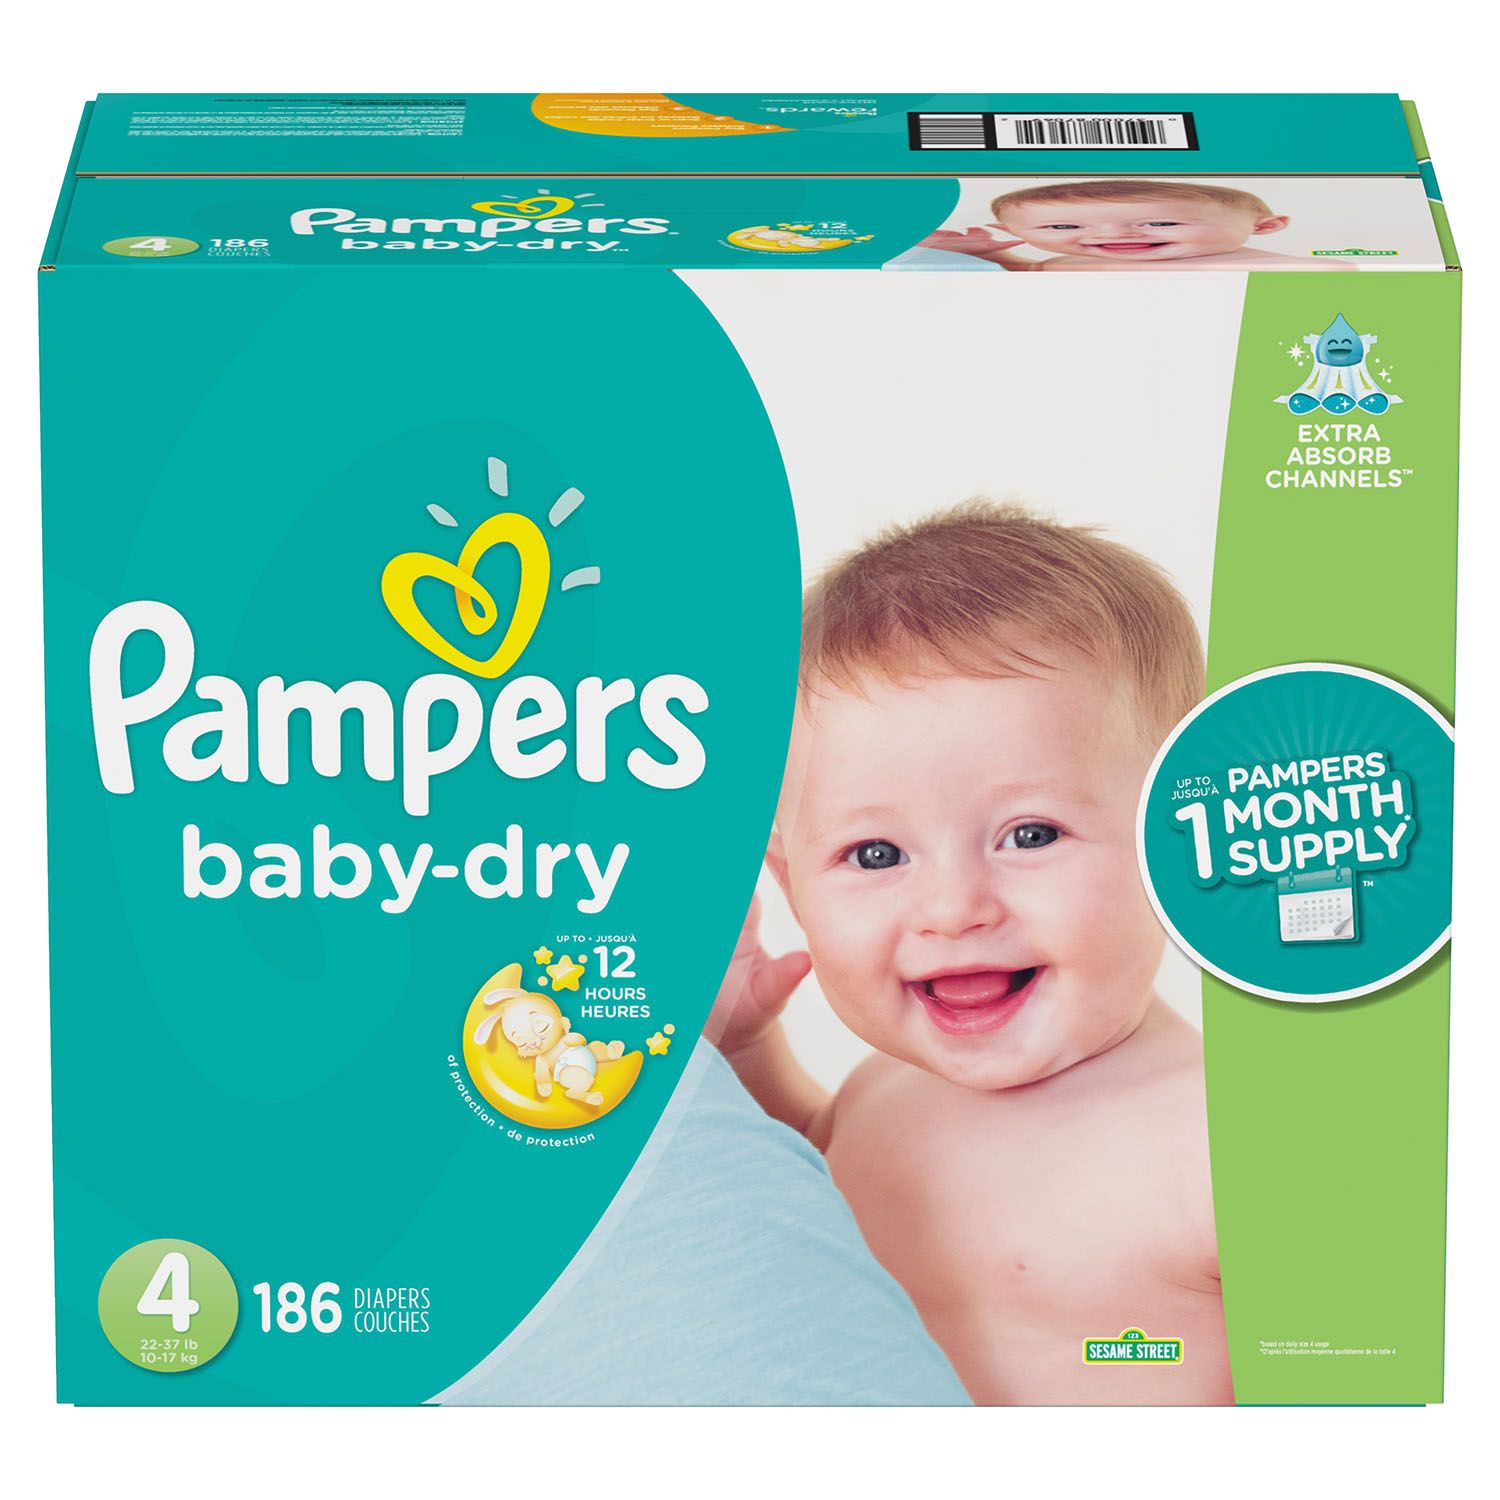 Pampers Baby Dry Diapers Size 4 -186 ct. (22-37 lb.) by Unbranded